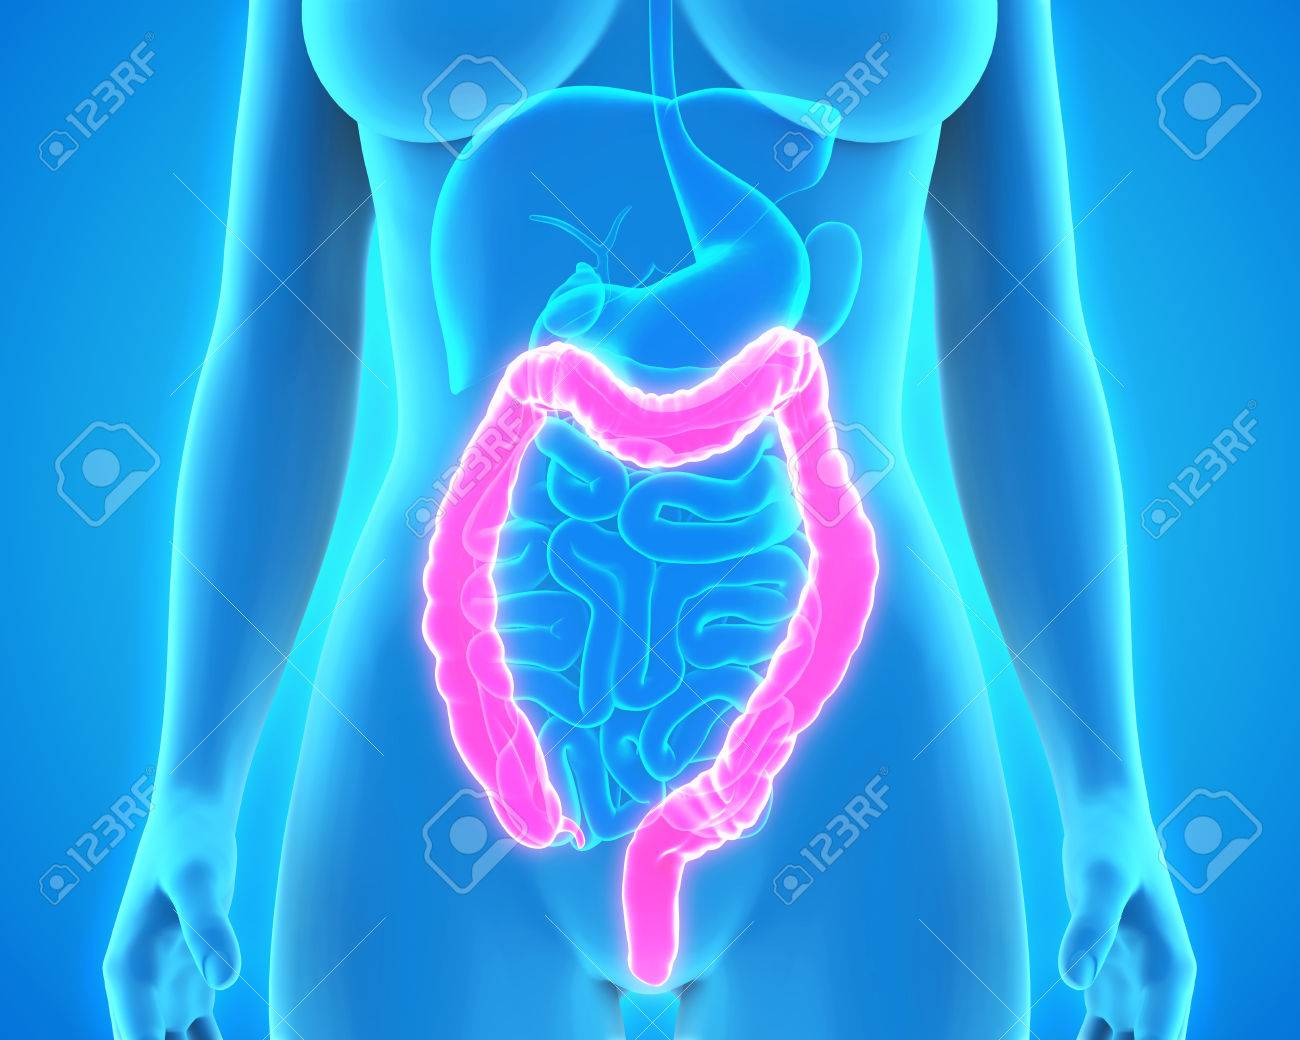 Human Colon Anatomy Stock Photo Picture And Royalty Free Image